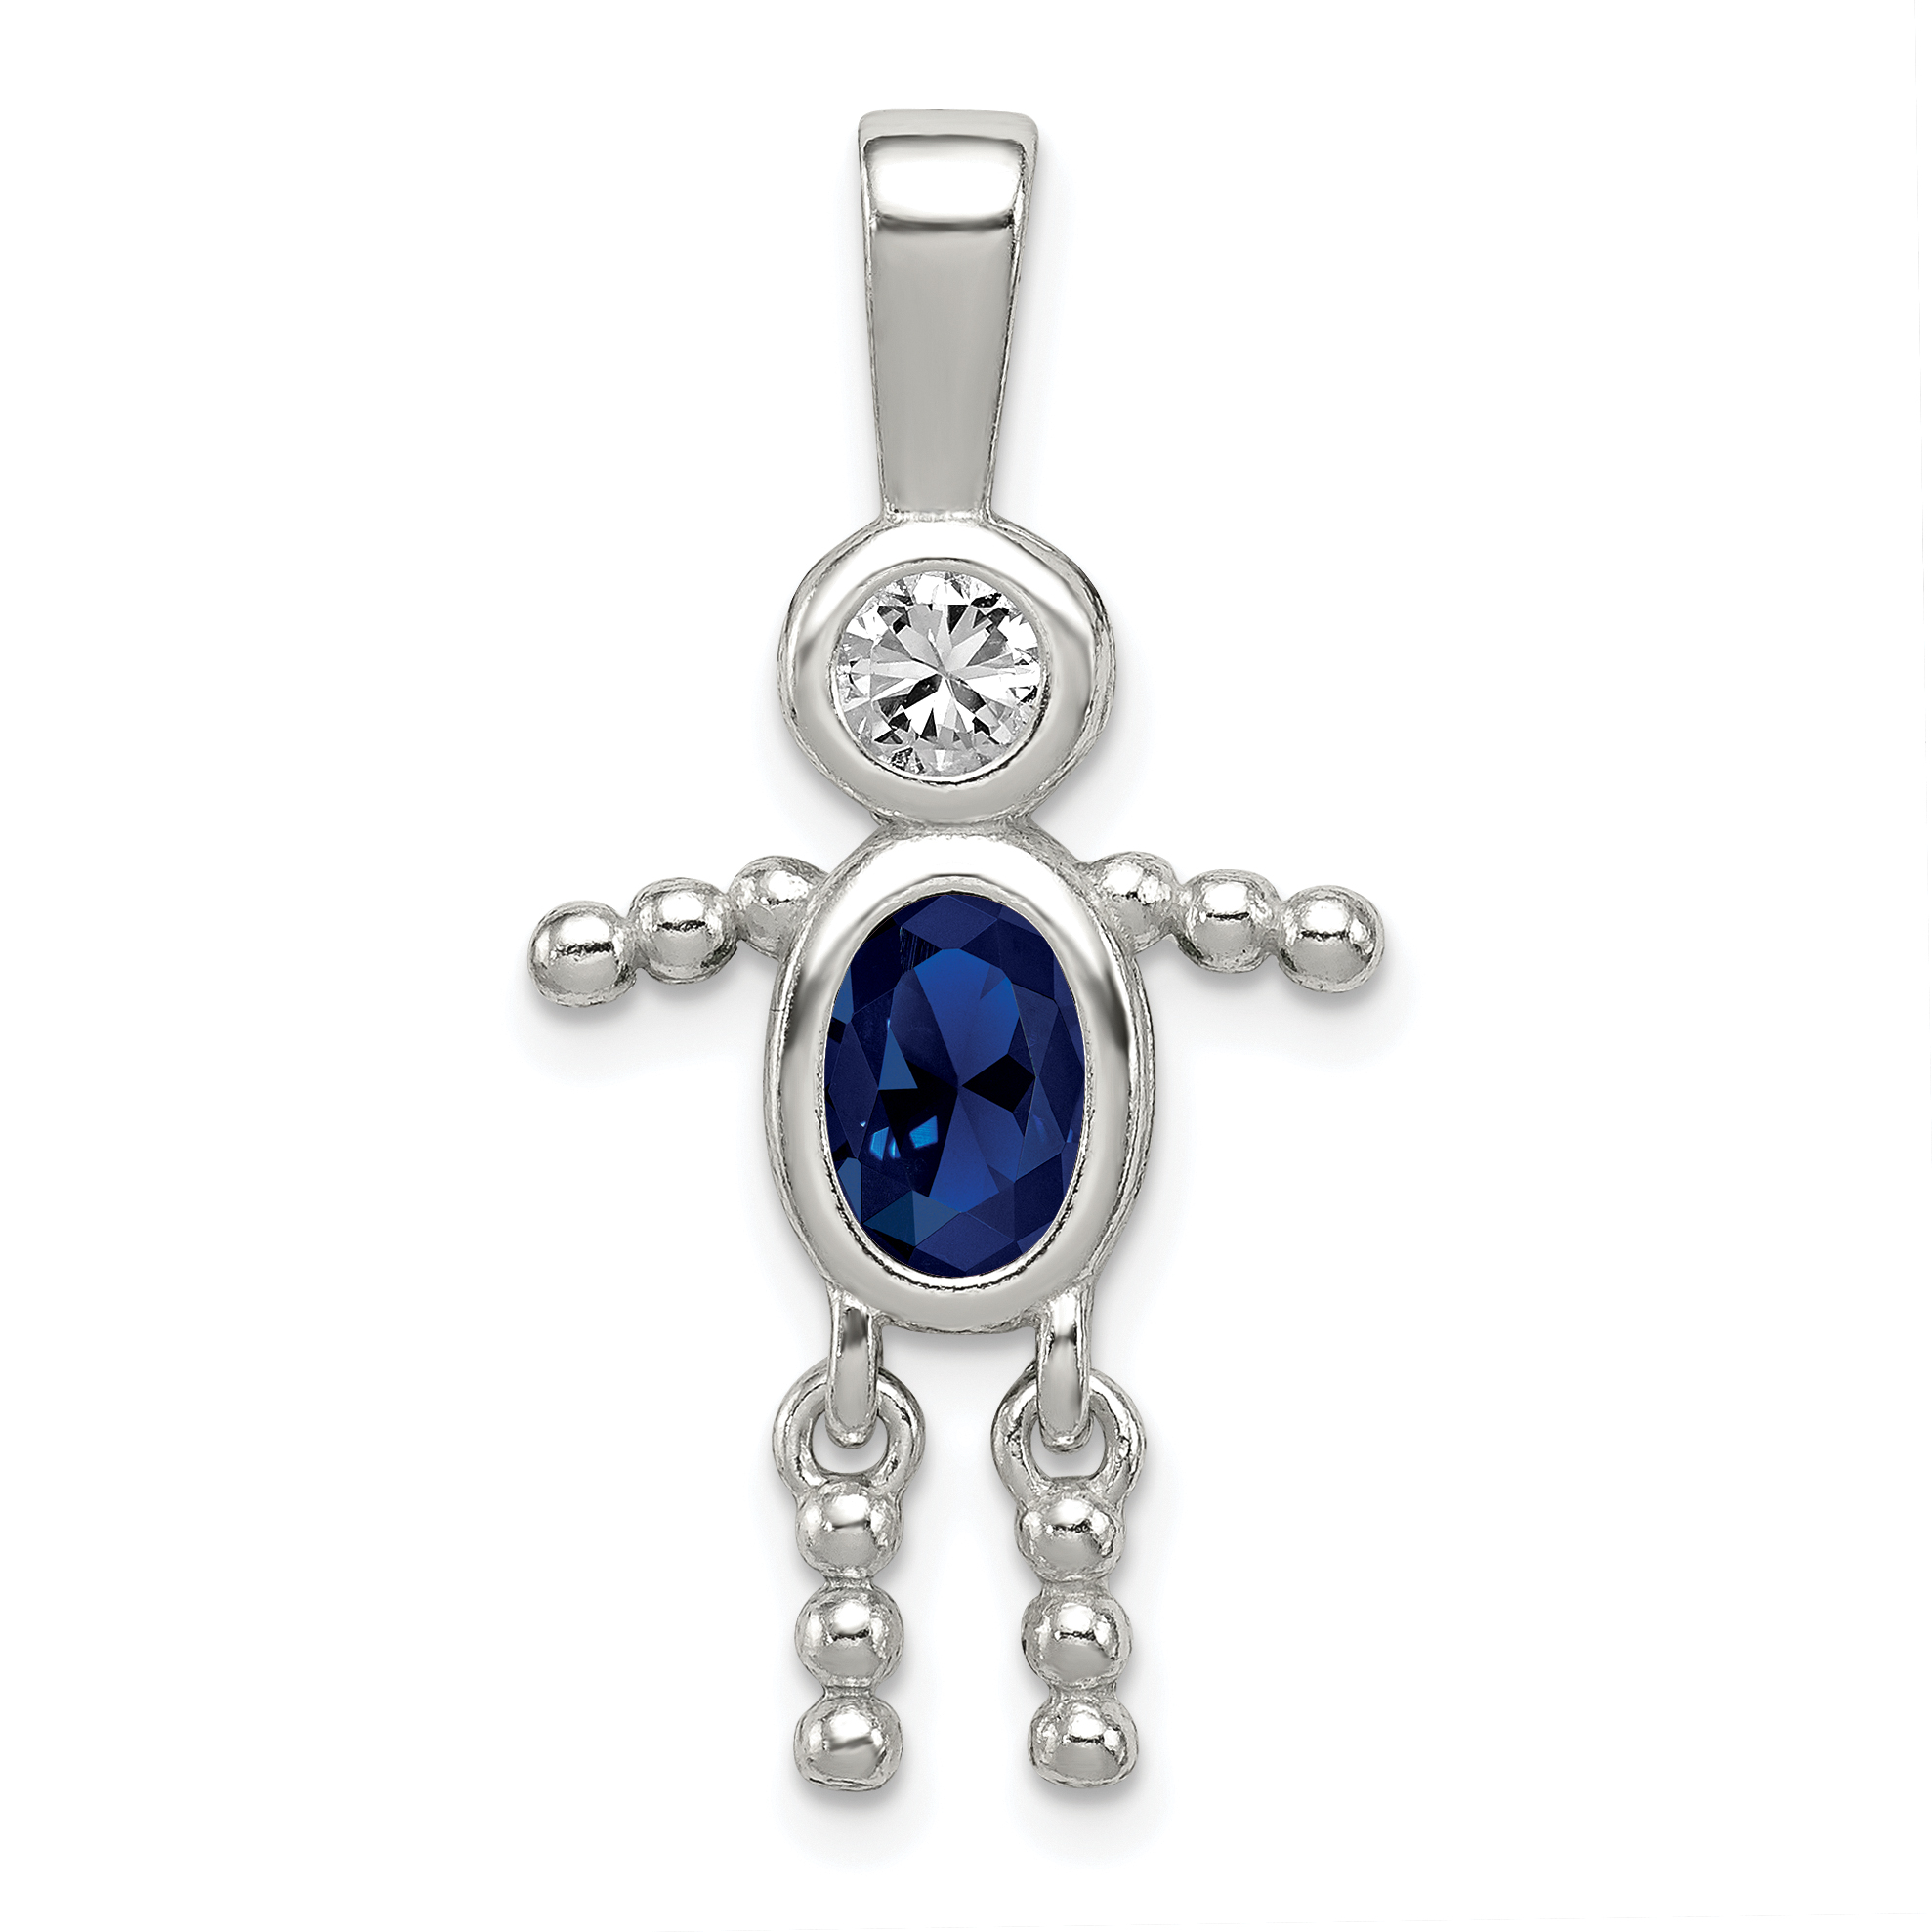 925 Sterling Silver Cubic Zirconia Cz September Glass Boy Pendant Charm Necklace Birthstone Kid Fine Jewelry Gifts For Women For Her - image 2 of 2